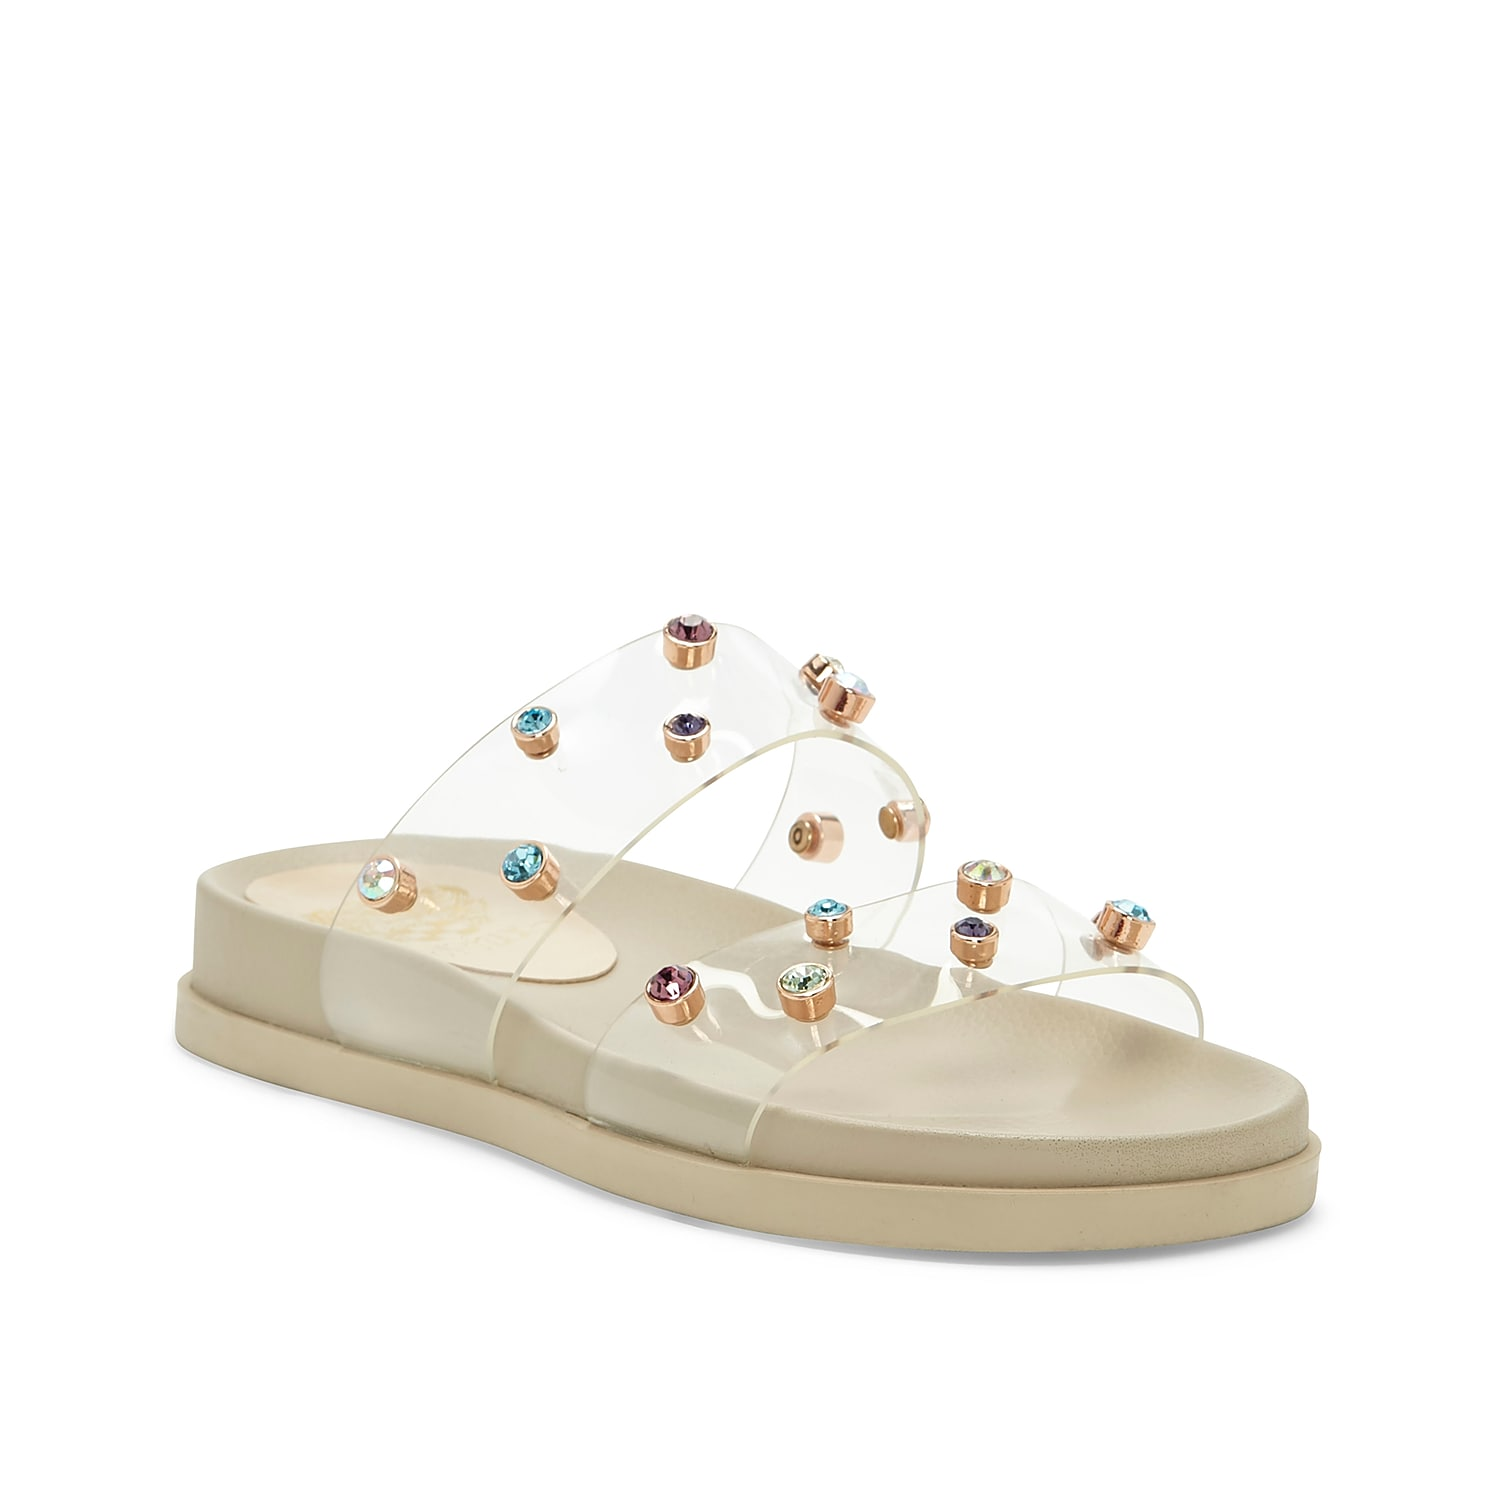 Complete your ensemble with the mesmerizing Partha sandal from Vince Camuto. With animal-printed and transparent straps, this sandal is sure to turn heads with its bedazzled decorations.